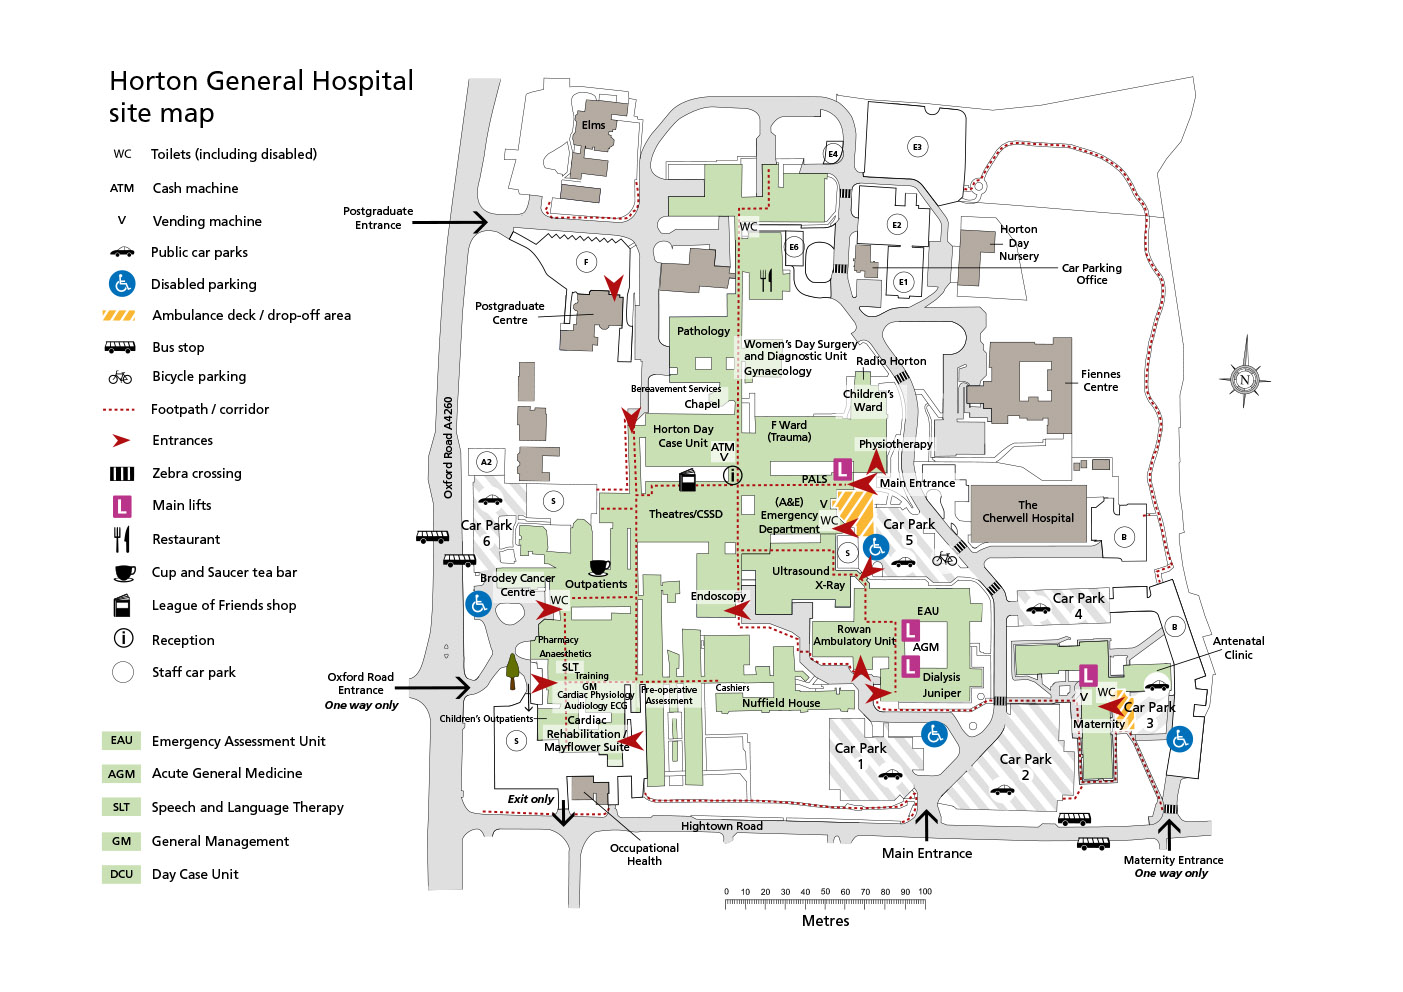 How To Find The Horton General Hospital